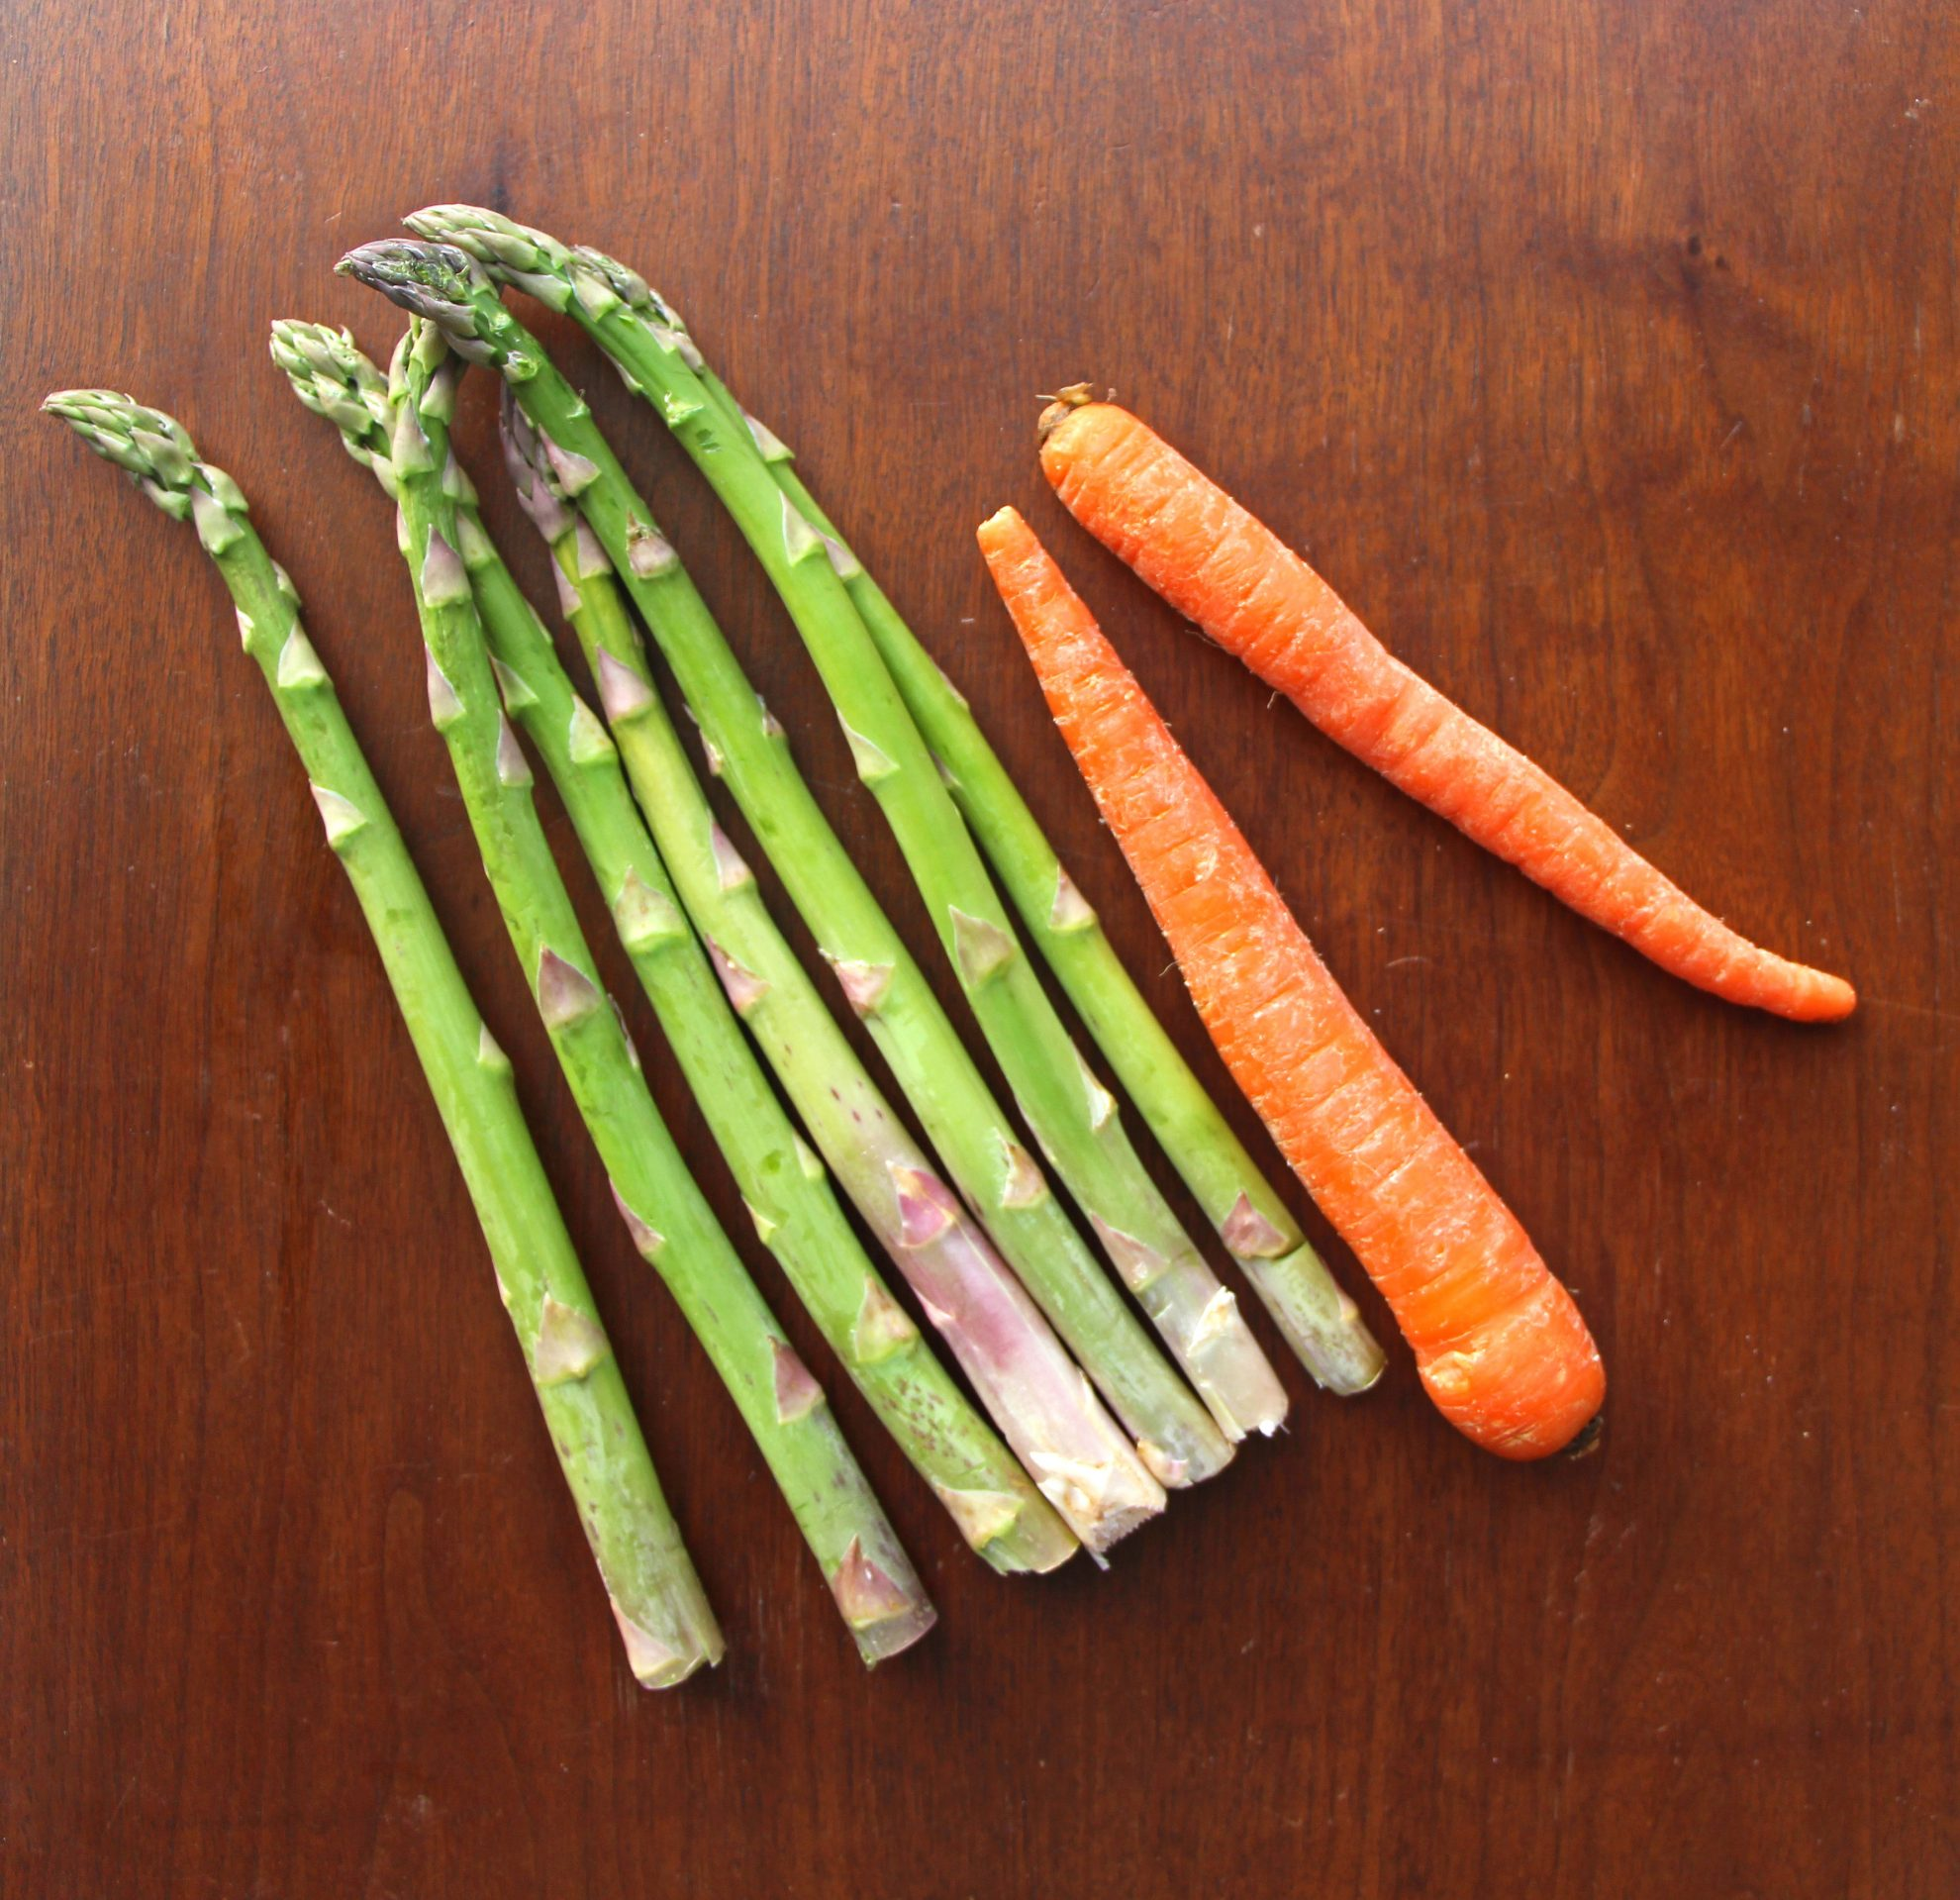 Asparagus and Carrots before they become balsamic roasted vegetables